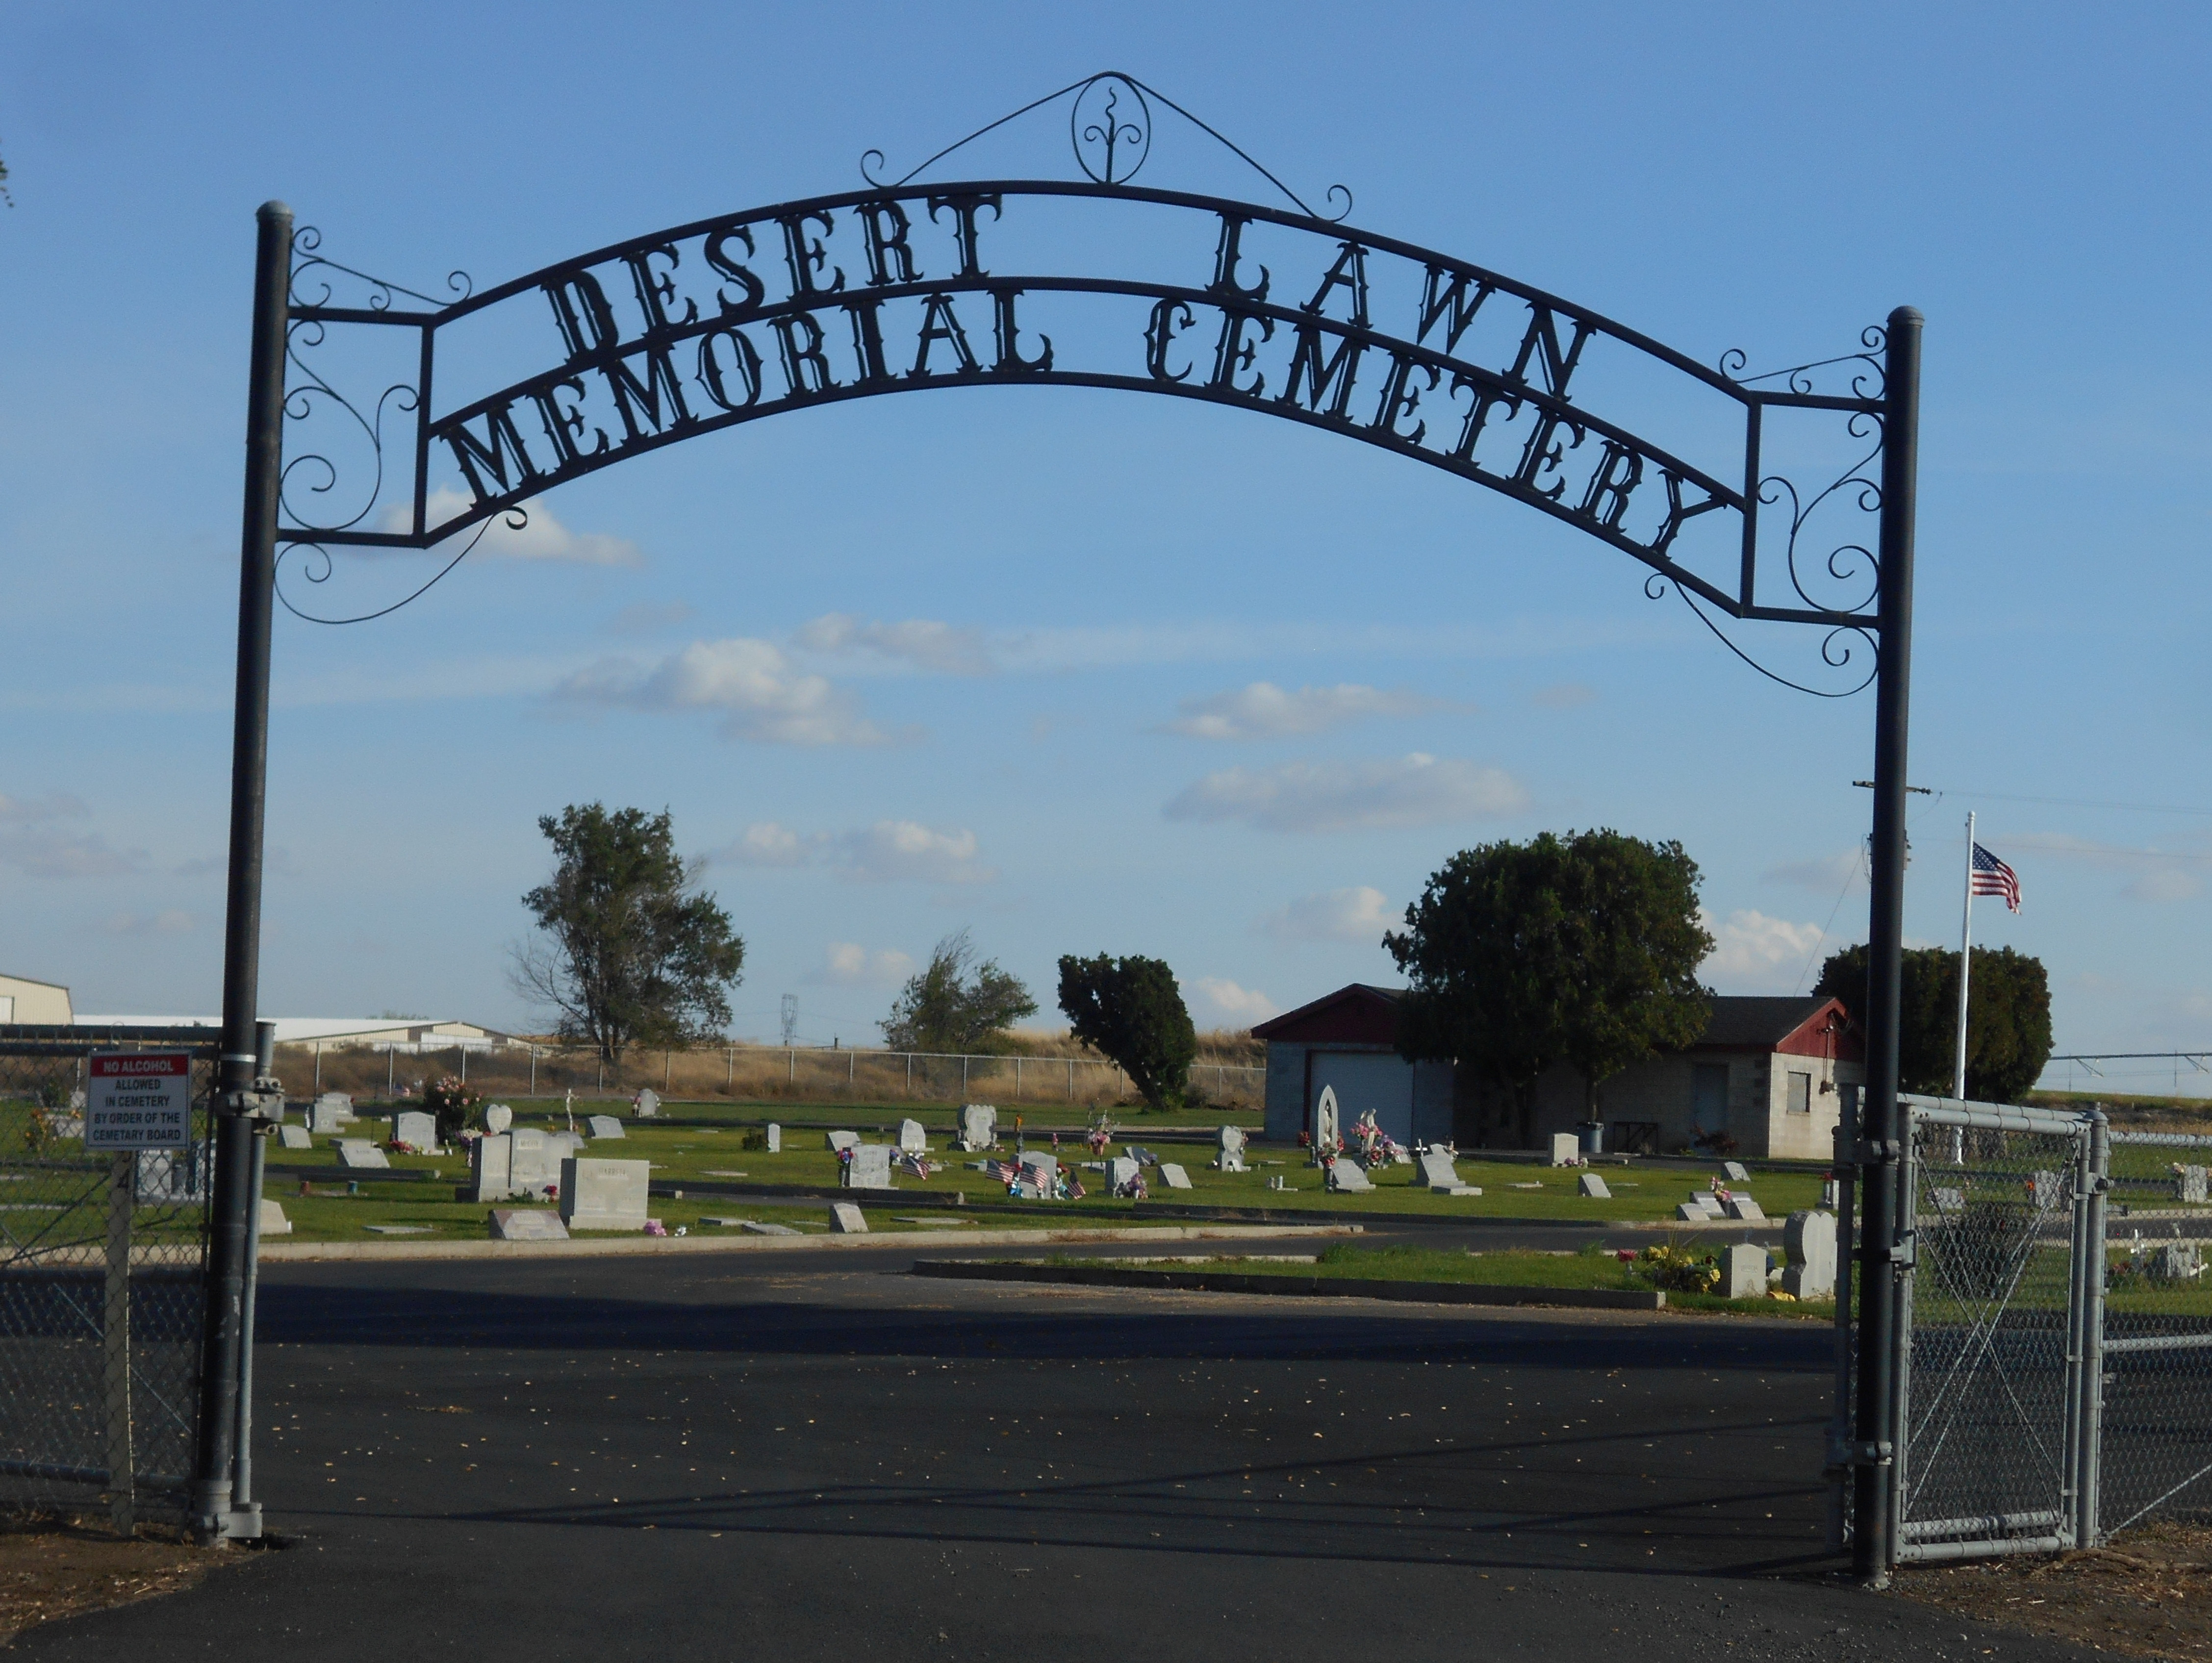 Irrigon Oregon Map.Desert Lawn Memorial Cemetery In Irrigon Oregon Find A Grave Cemetery